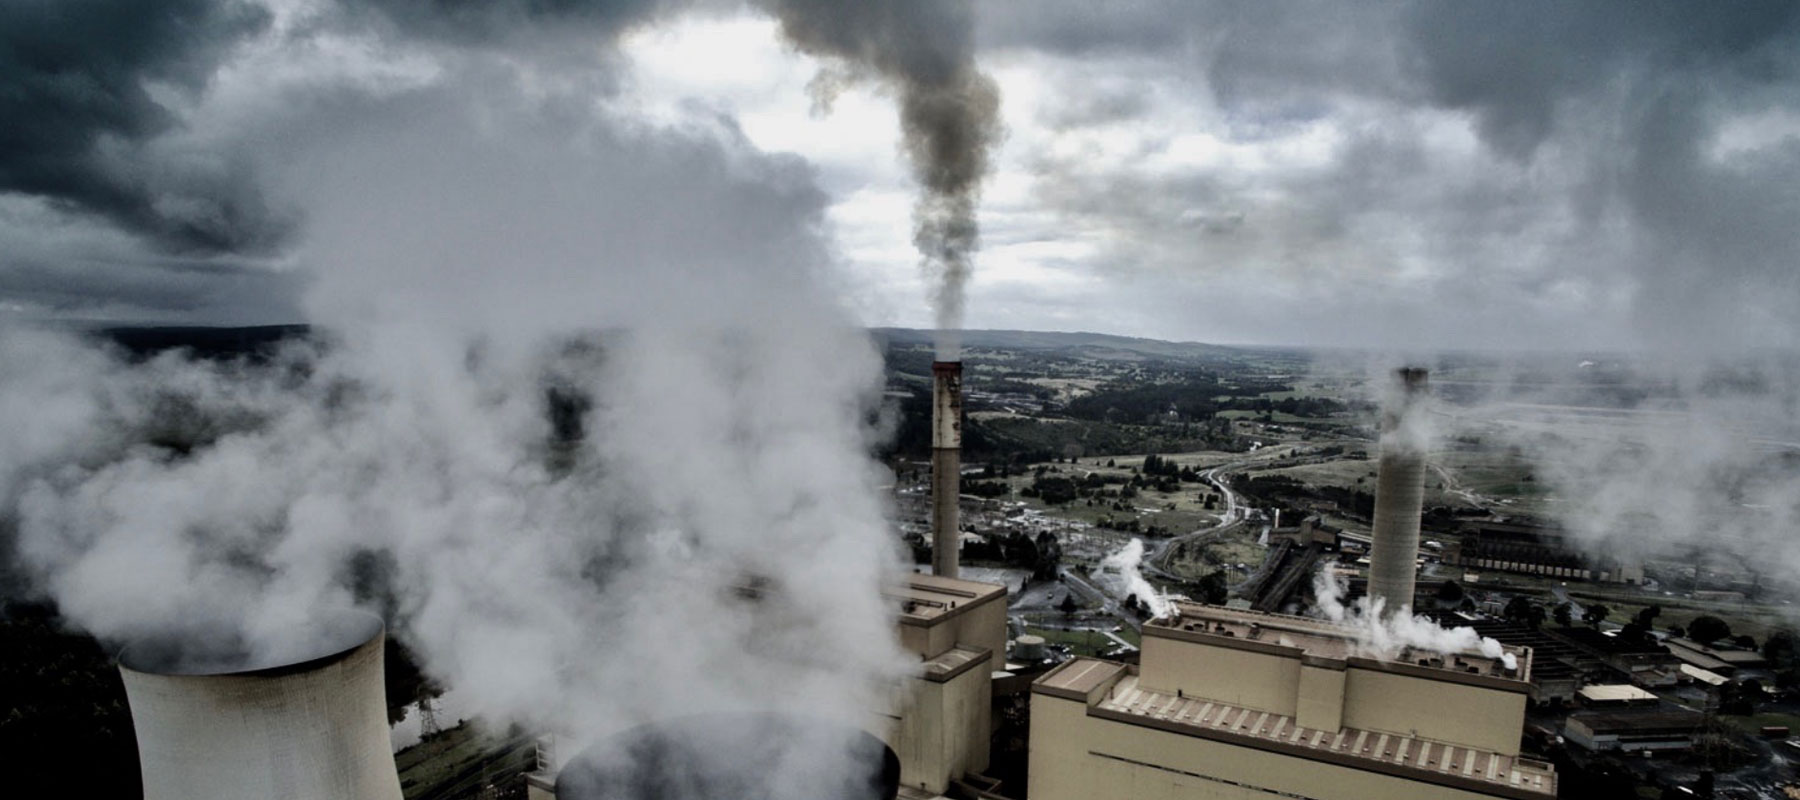 For our planet | Burning coal is Australia's leading cause of climate change. Closing coal-burning power stations is the most effective way for us to combat global warming.